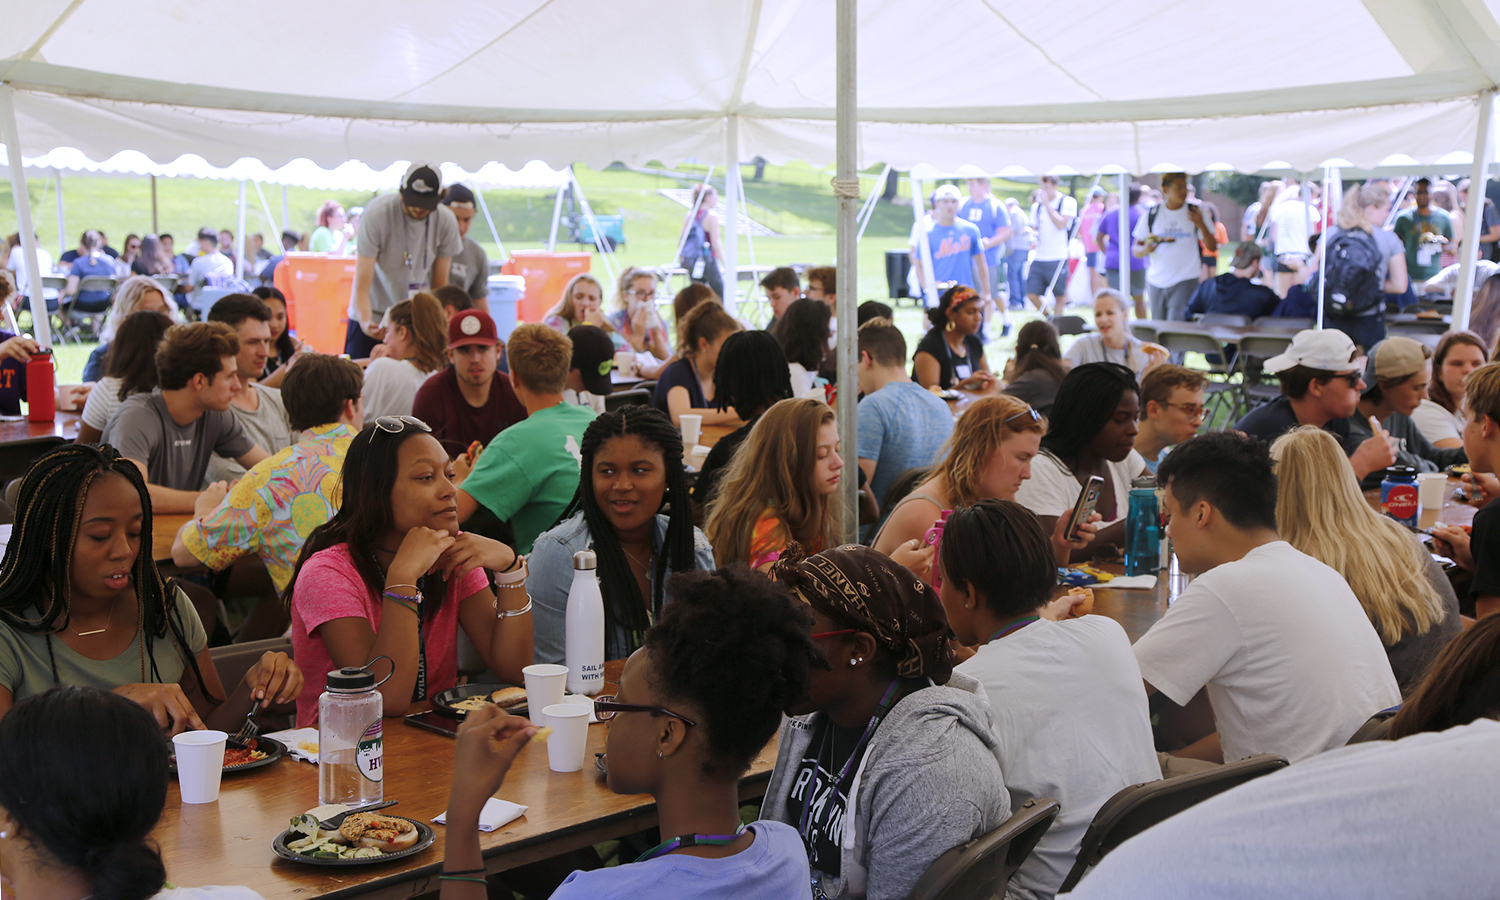 First-year students enjoy a meal on the Quad during Orientation Weekend.